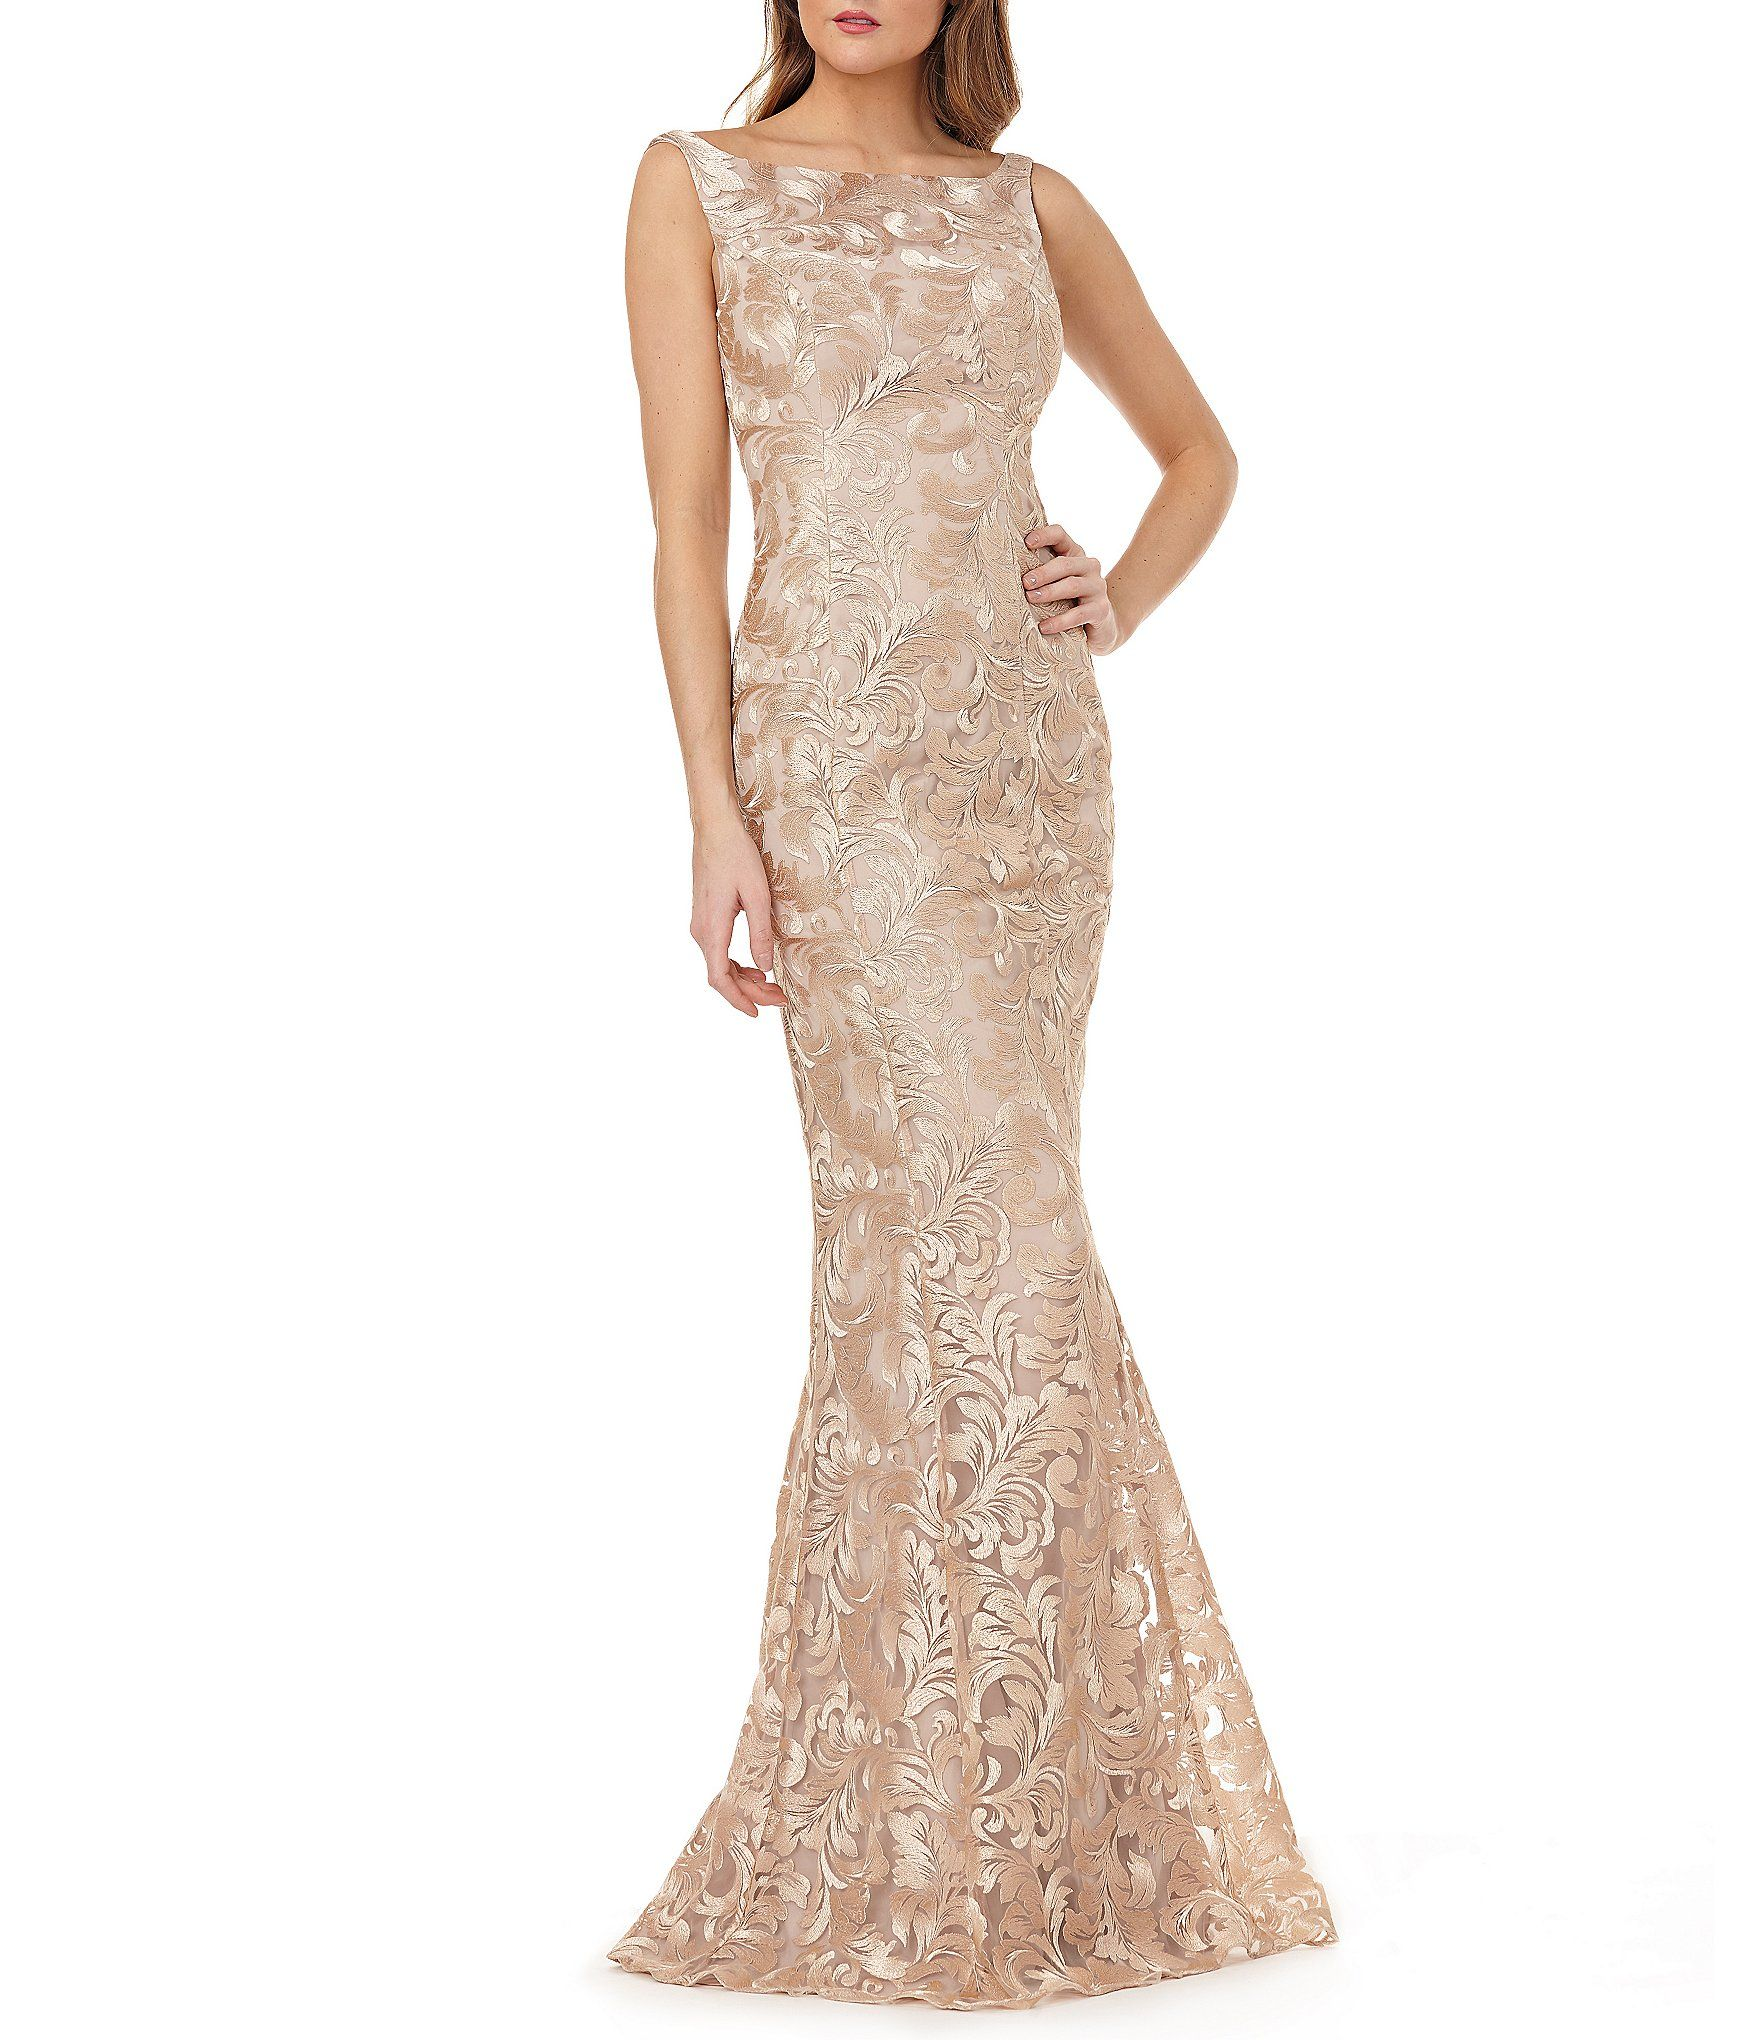 Kay Unger Metallic Floral Embroidery Fitted Gown In Champagne At Dillards Com 328 Dillards Wedding Dresses Dillards Dress Pretty Wedding Dresses